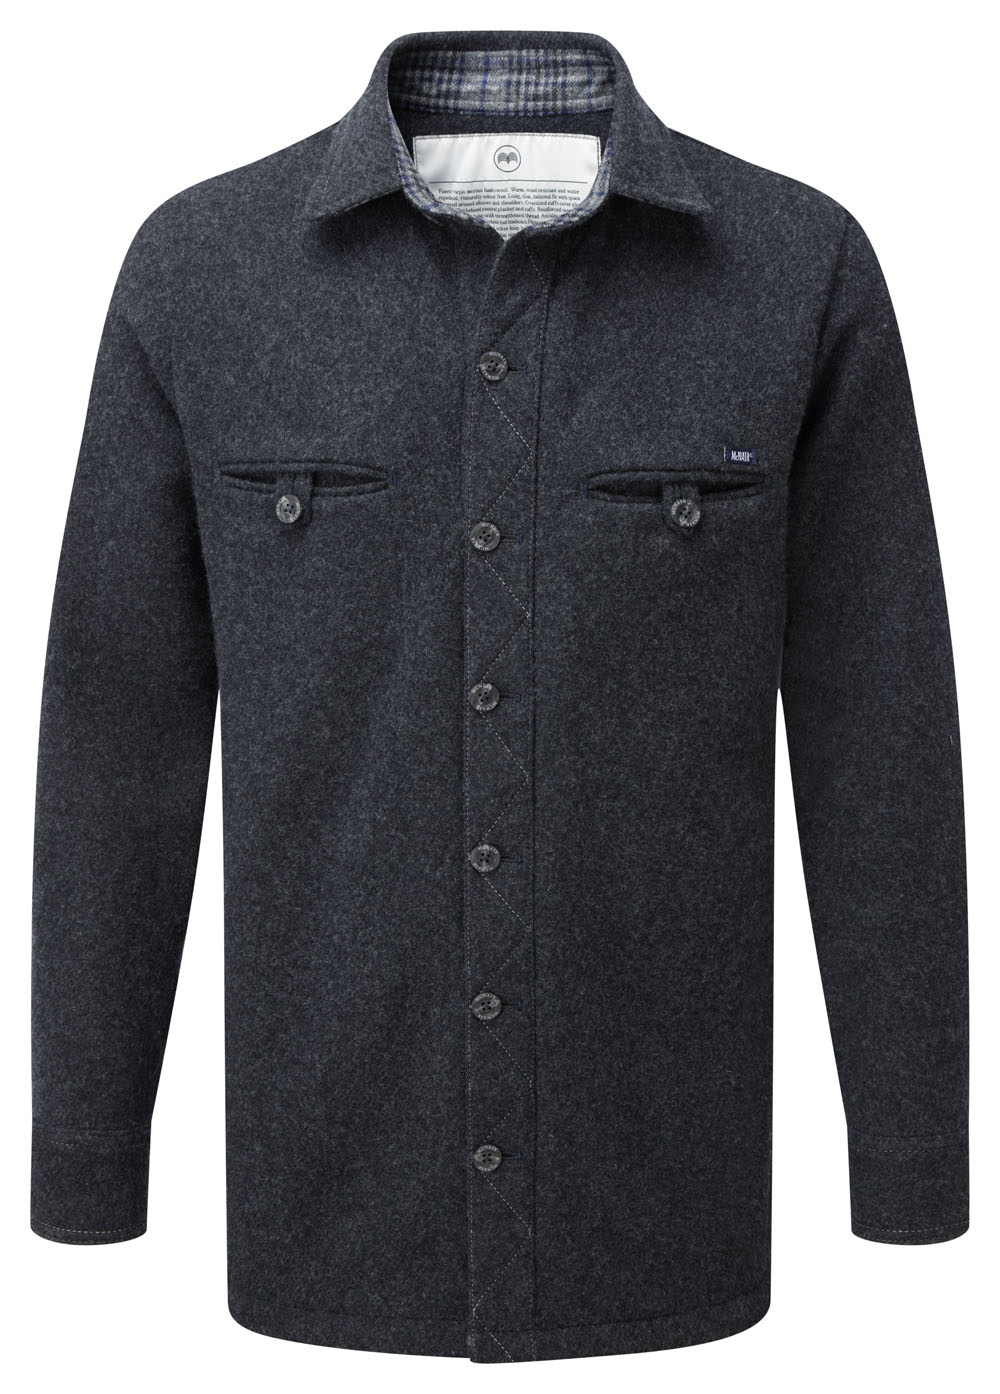 MENS_CHARCOAL_FRONT